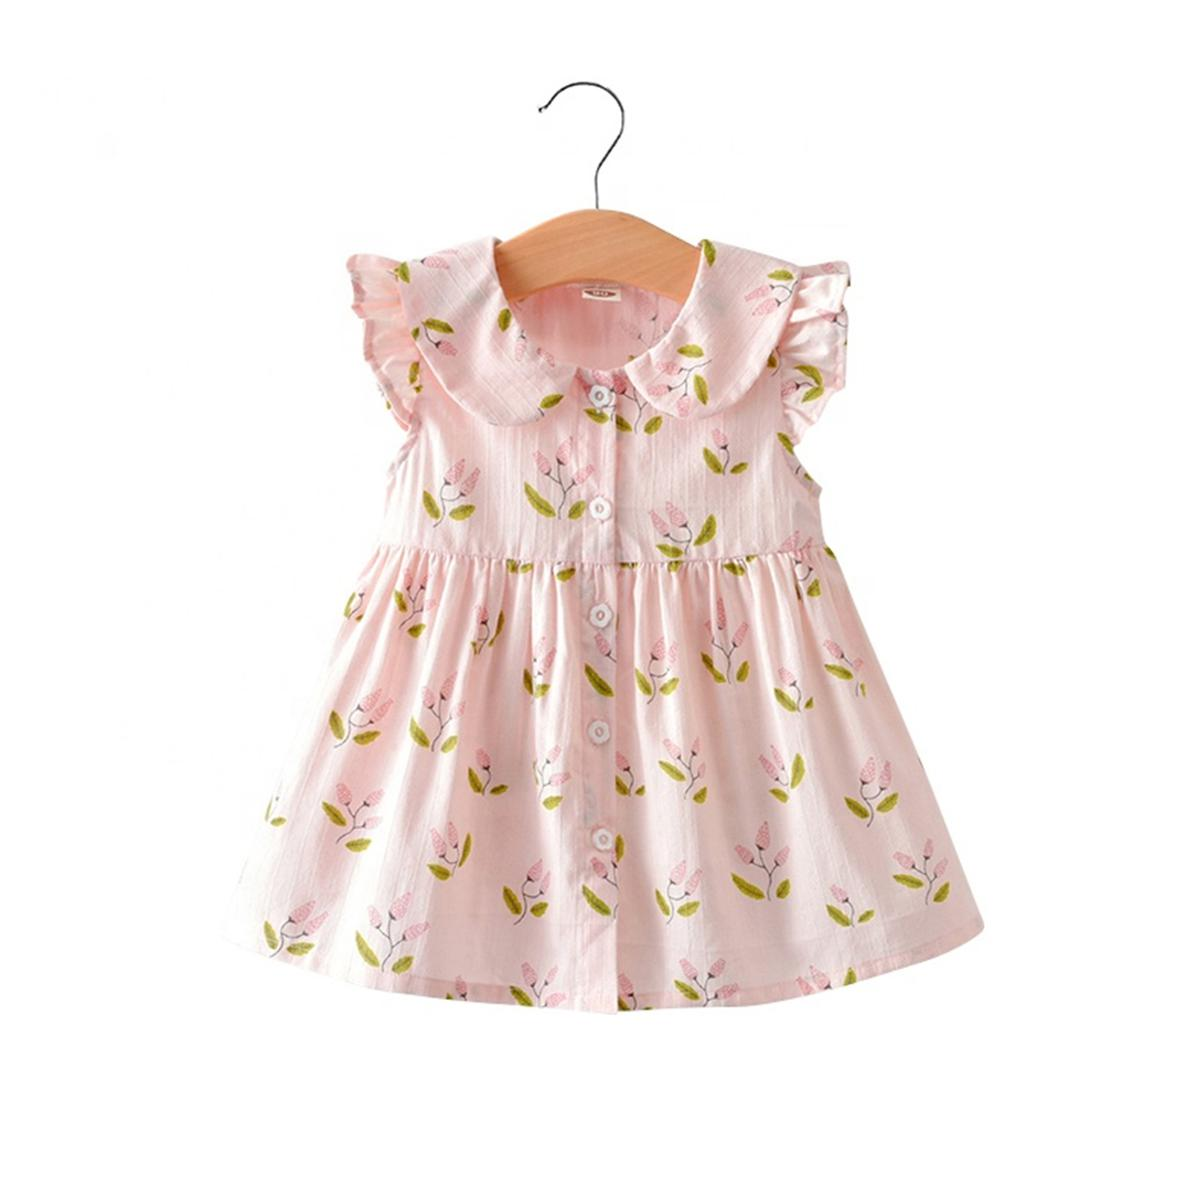 Pink Colored Floral Printed Ruffled Sleeve With Peter Pan Collar Cotton Dress For Girl's